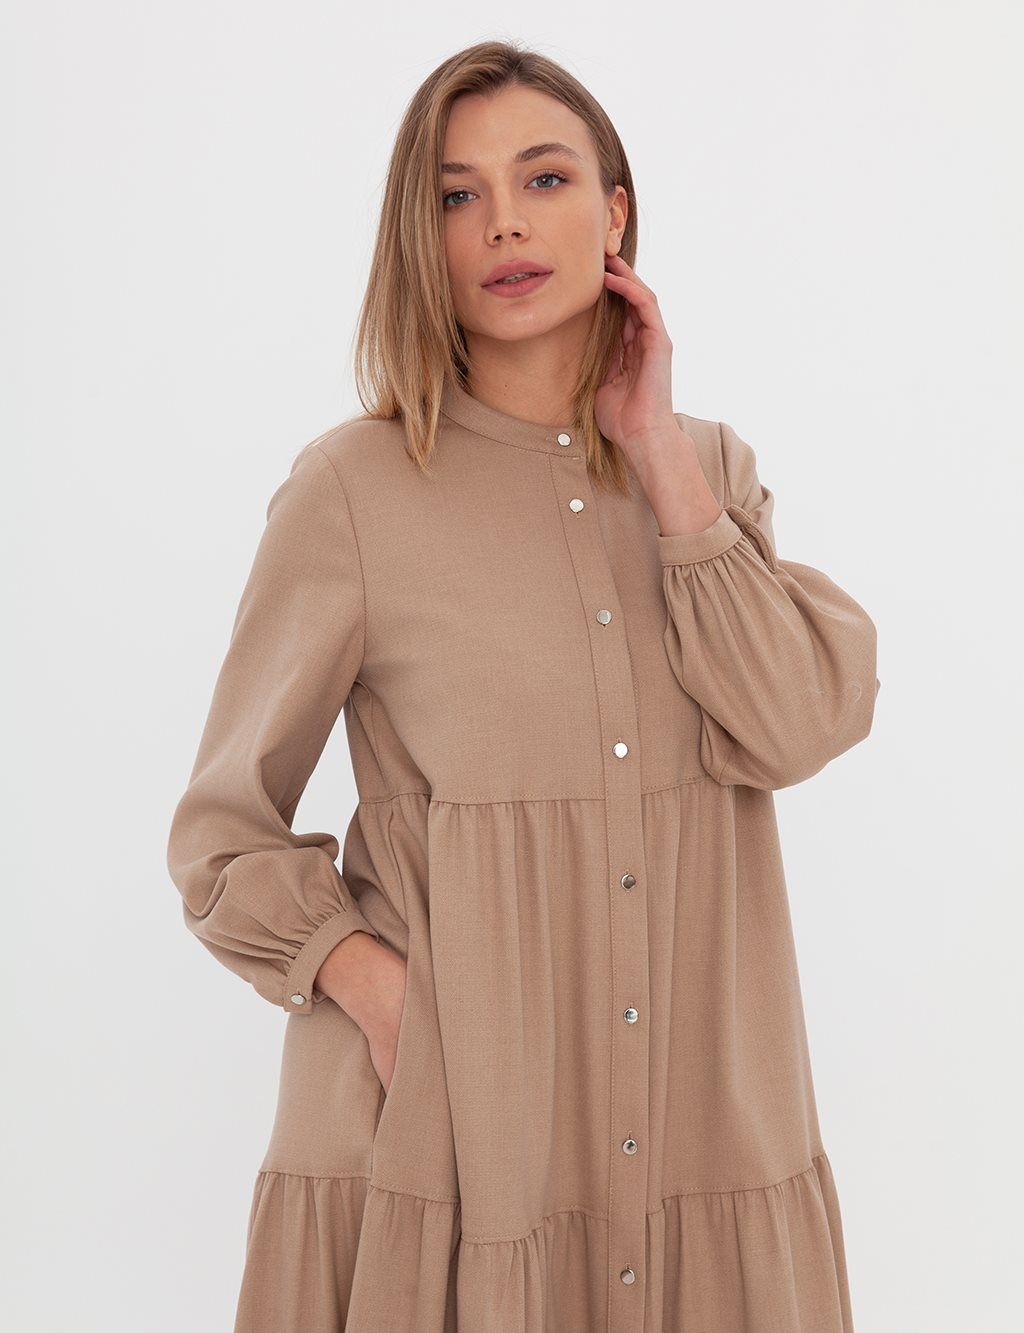 Piece Flounce Dress A20 23167 Beige